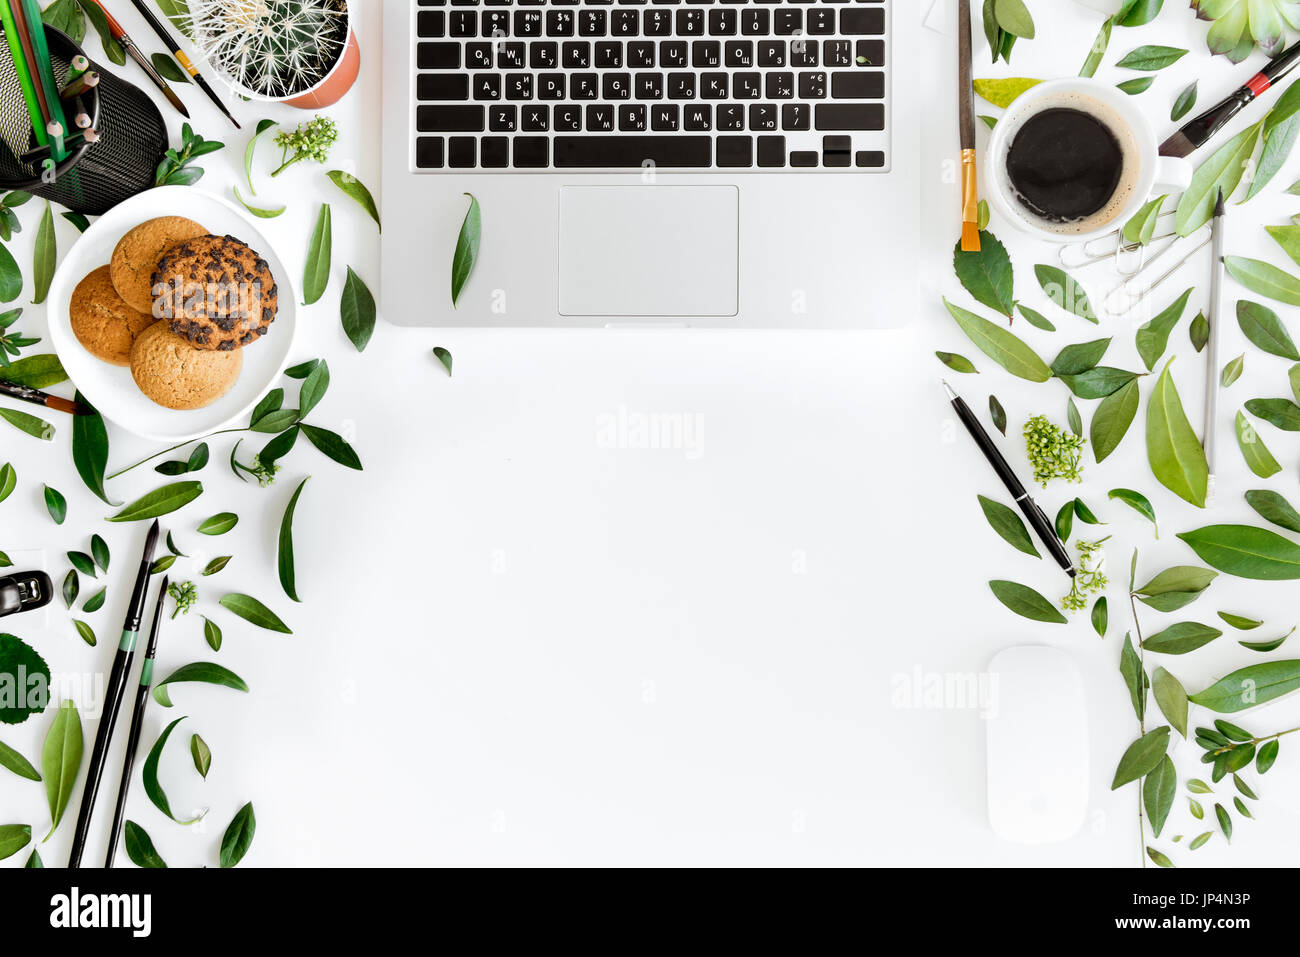 Top view of laptop, office supplies and cup of coffee at workplace isolated on white, wireless communication concept - Stock Image